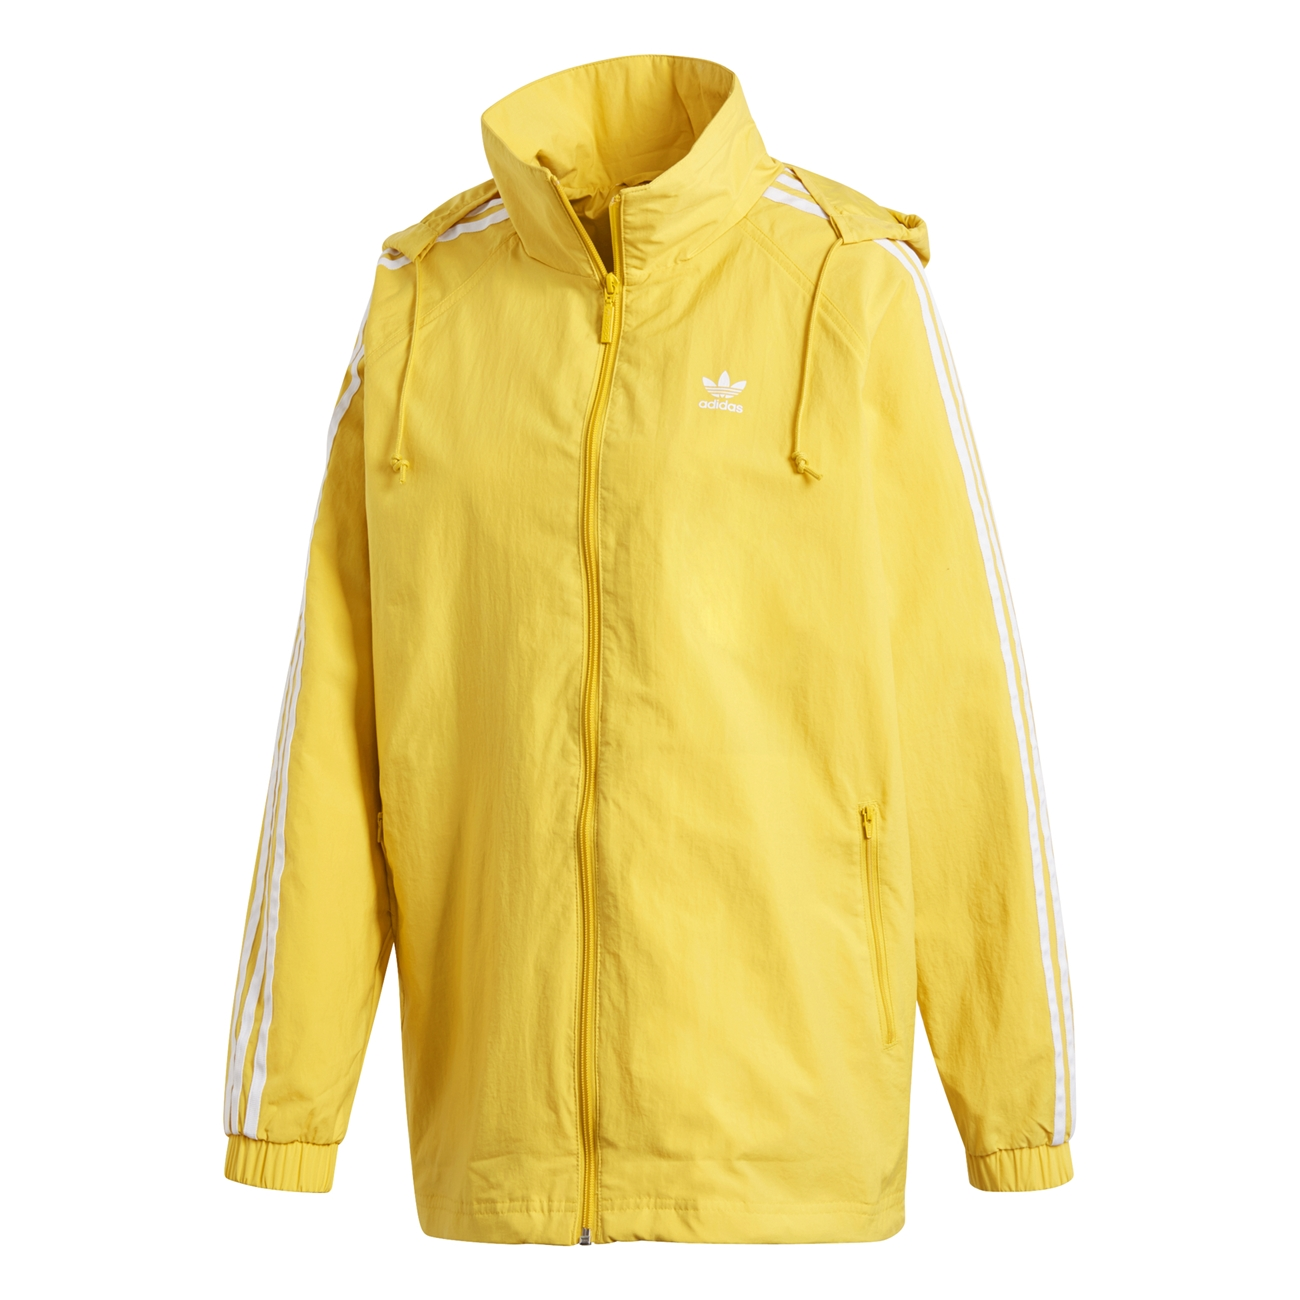 Adidas Originals Stadium Jacket W (Corn Yellow)